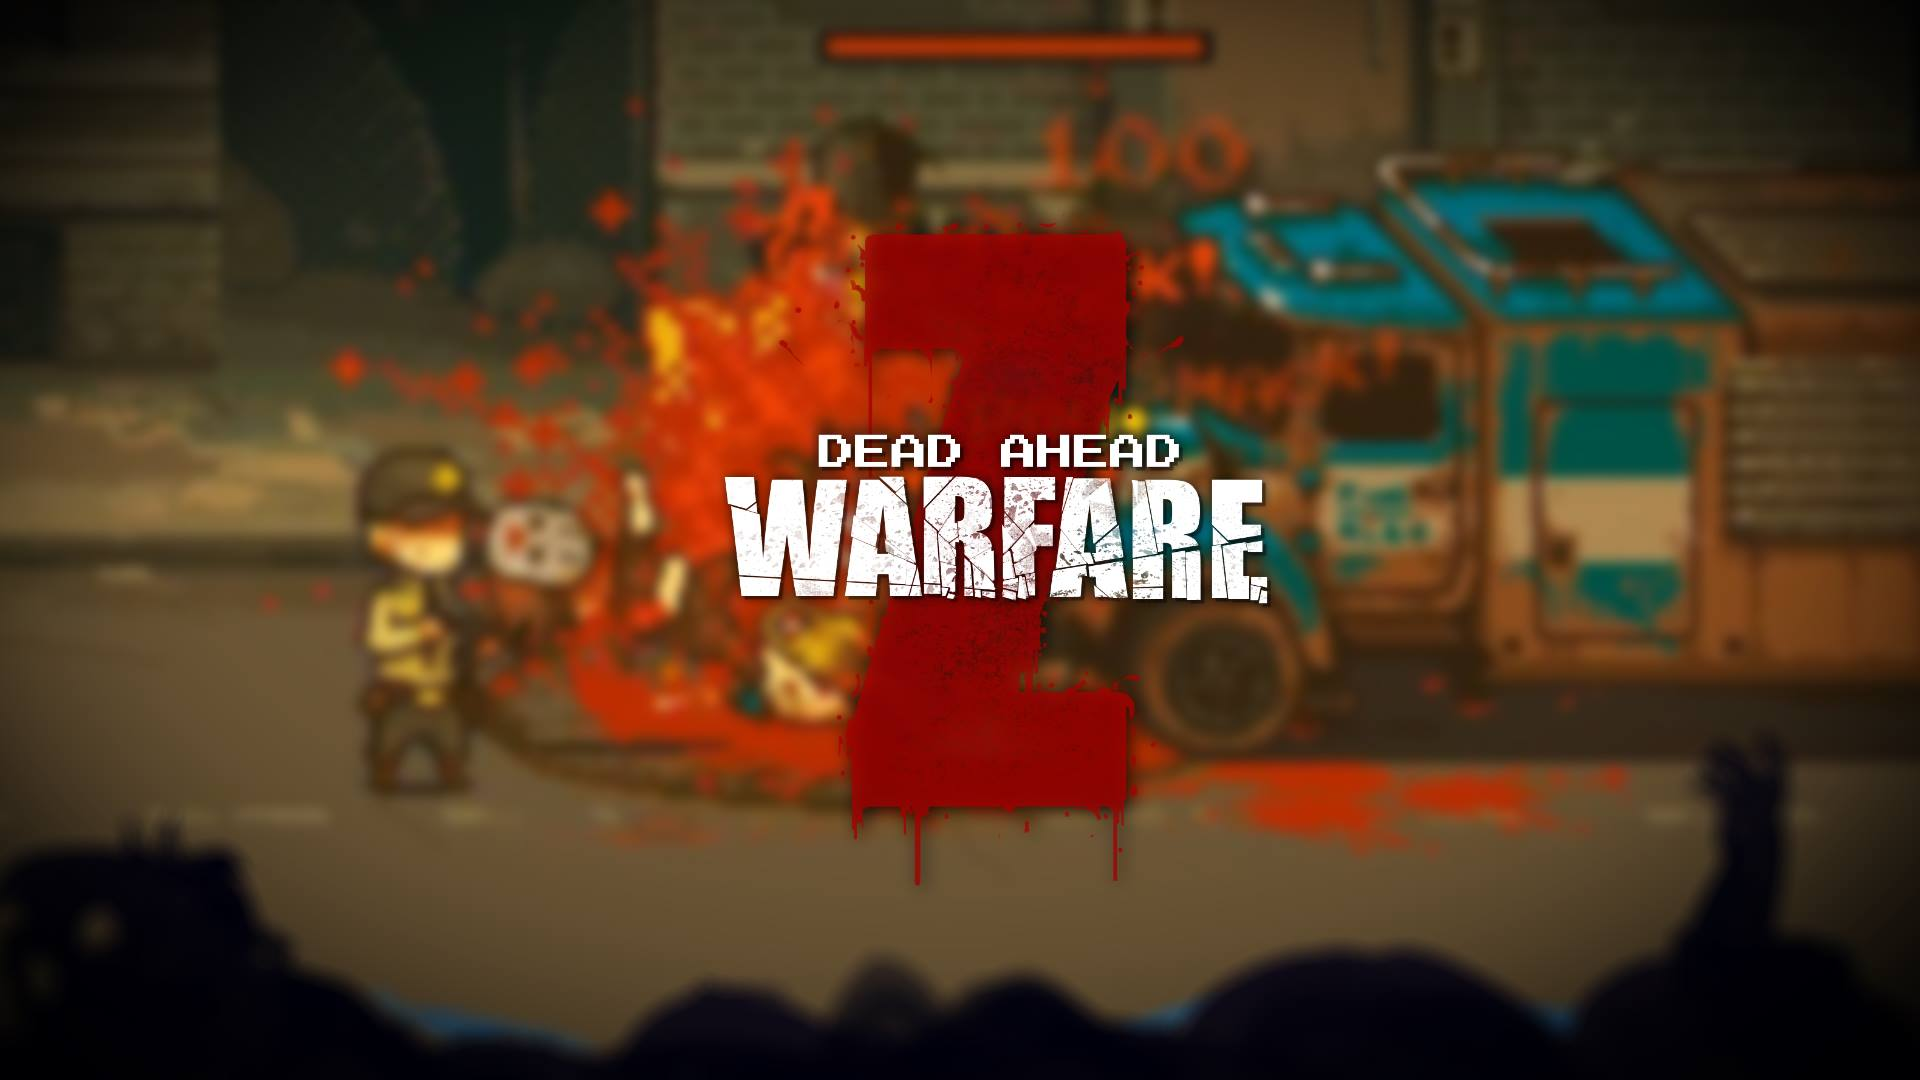 Review - Dead Ahead: Zombie Warfare (Xbox One)